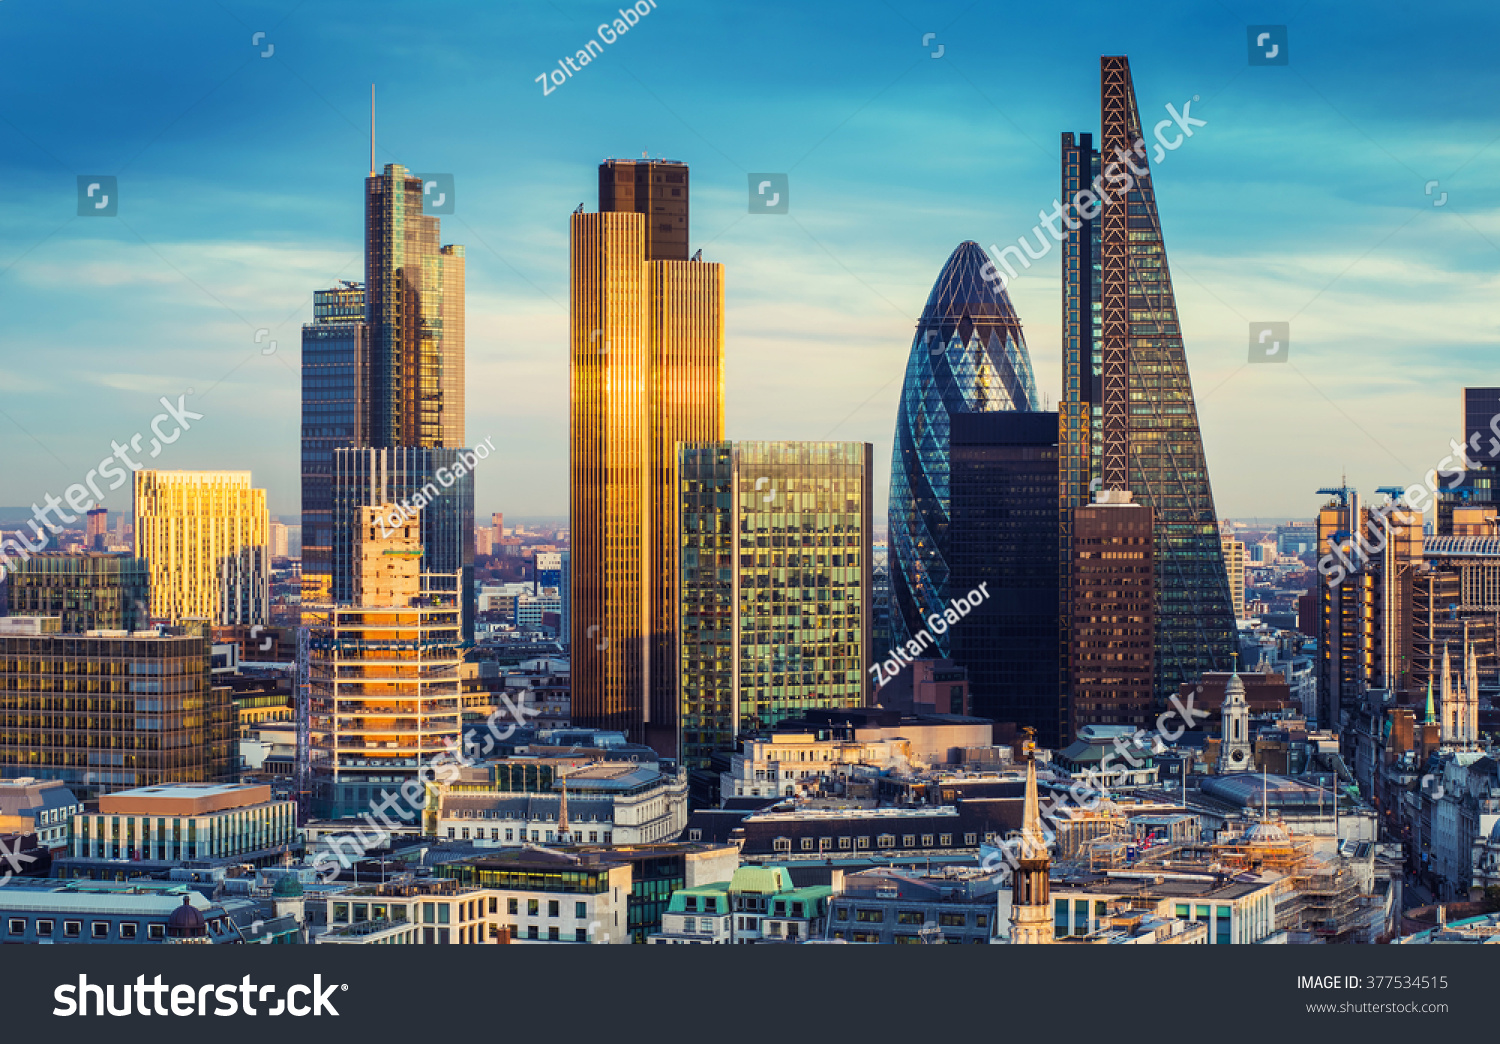 London, England - The bank district of central London with famous skyscrapers and other landmarks at sunset with blue sky - UK #377534515